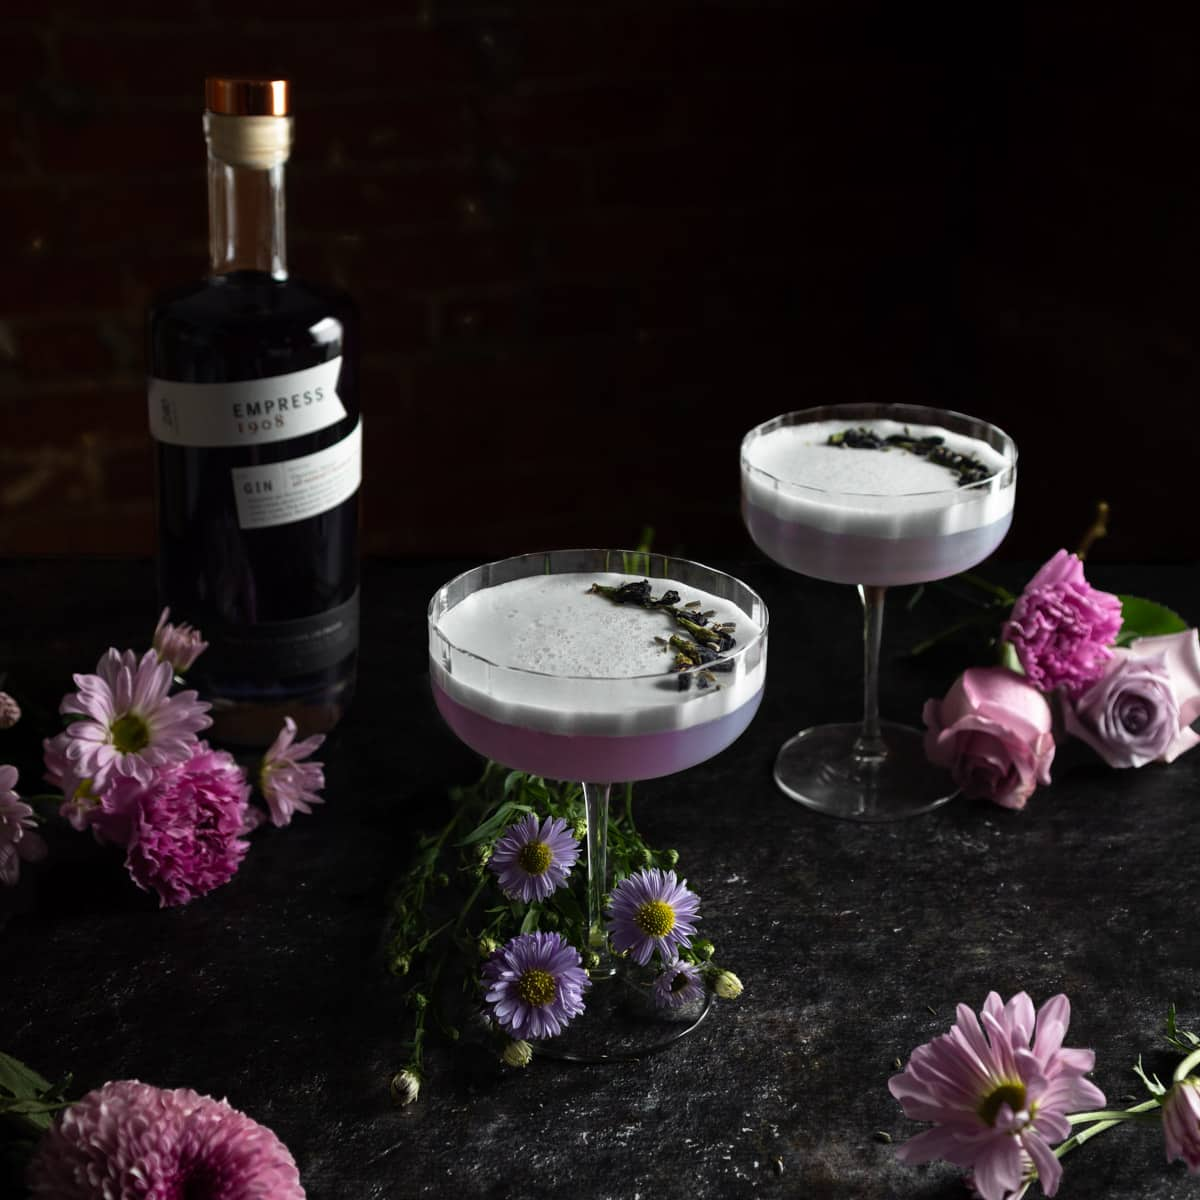 Empress 1908 Gin sour Cocktails surrounded by fresh purple flowers and a bottle of Empress gin